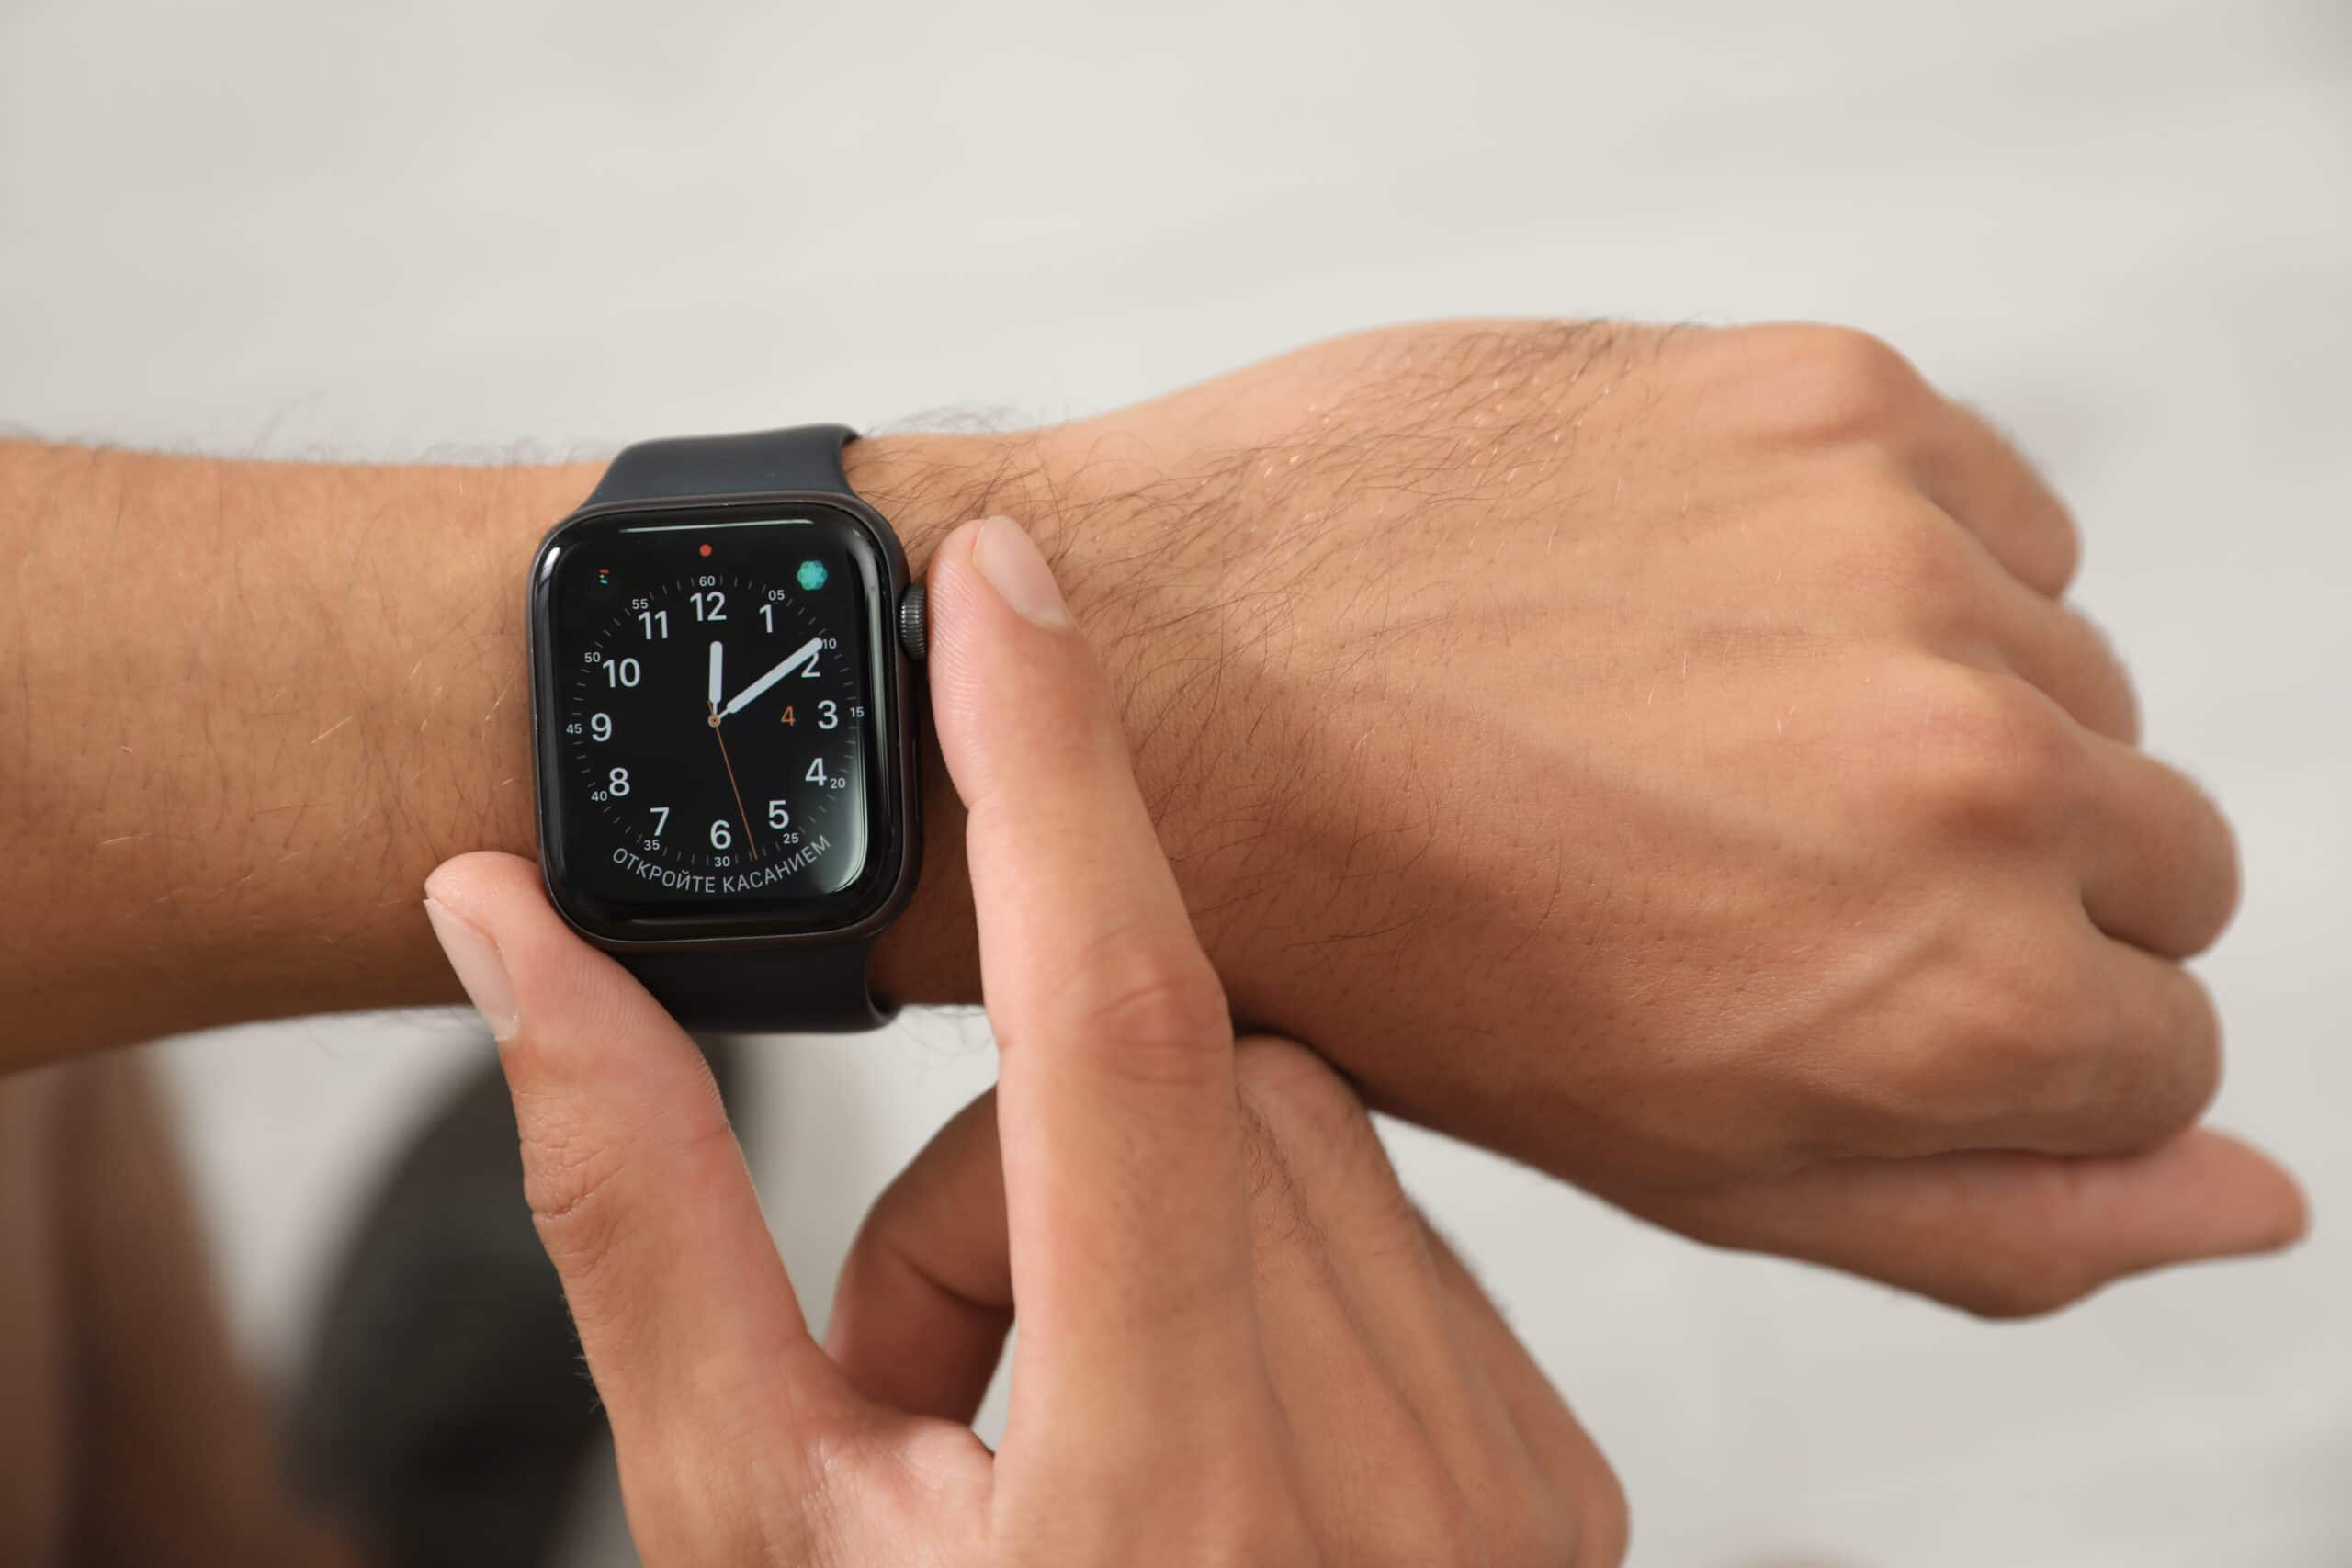 Homem mexendo em Apple Watch no pulso